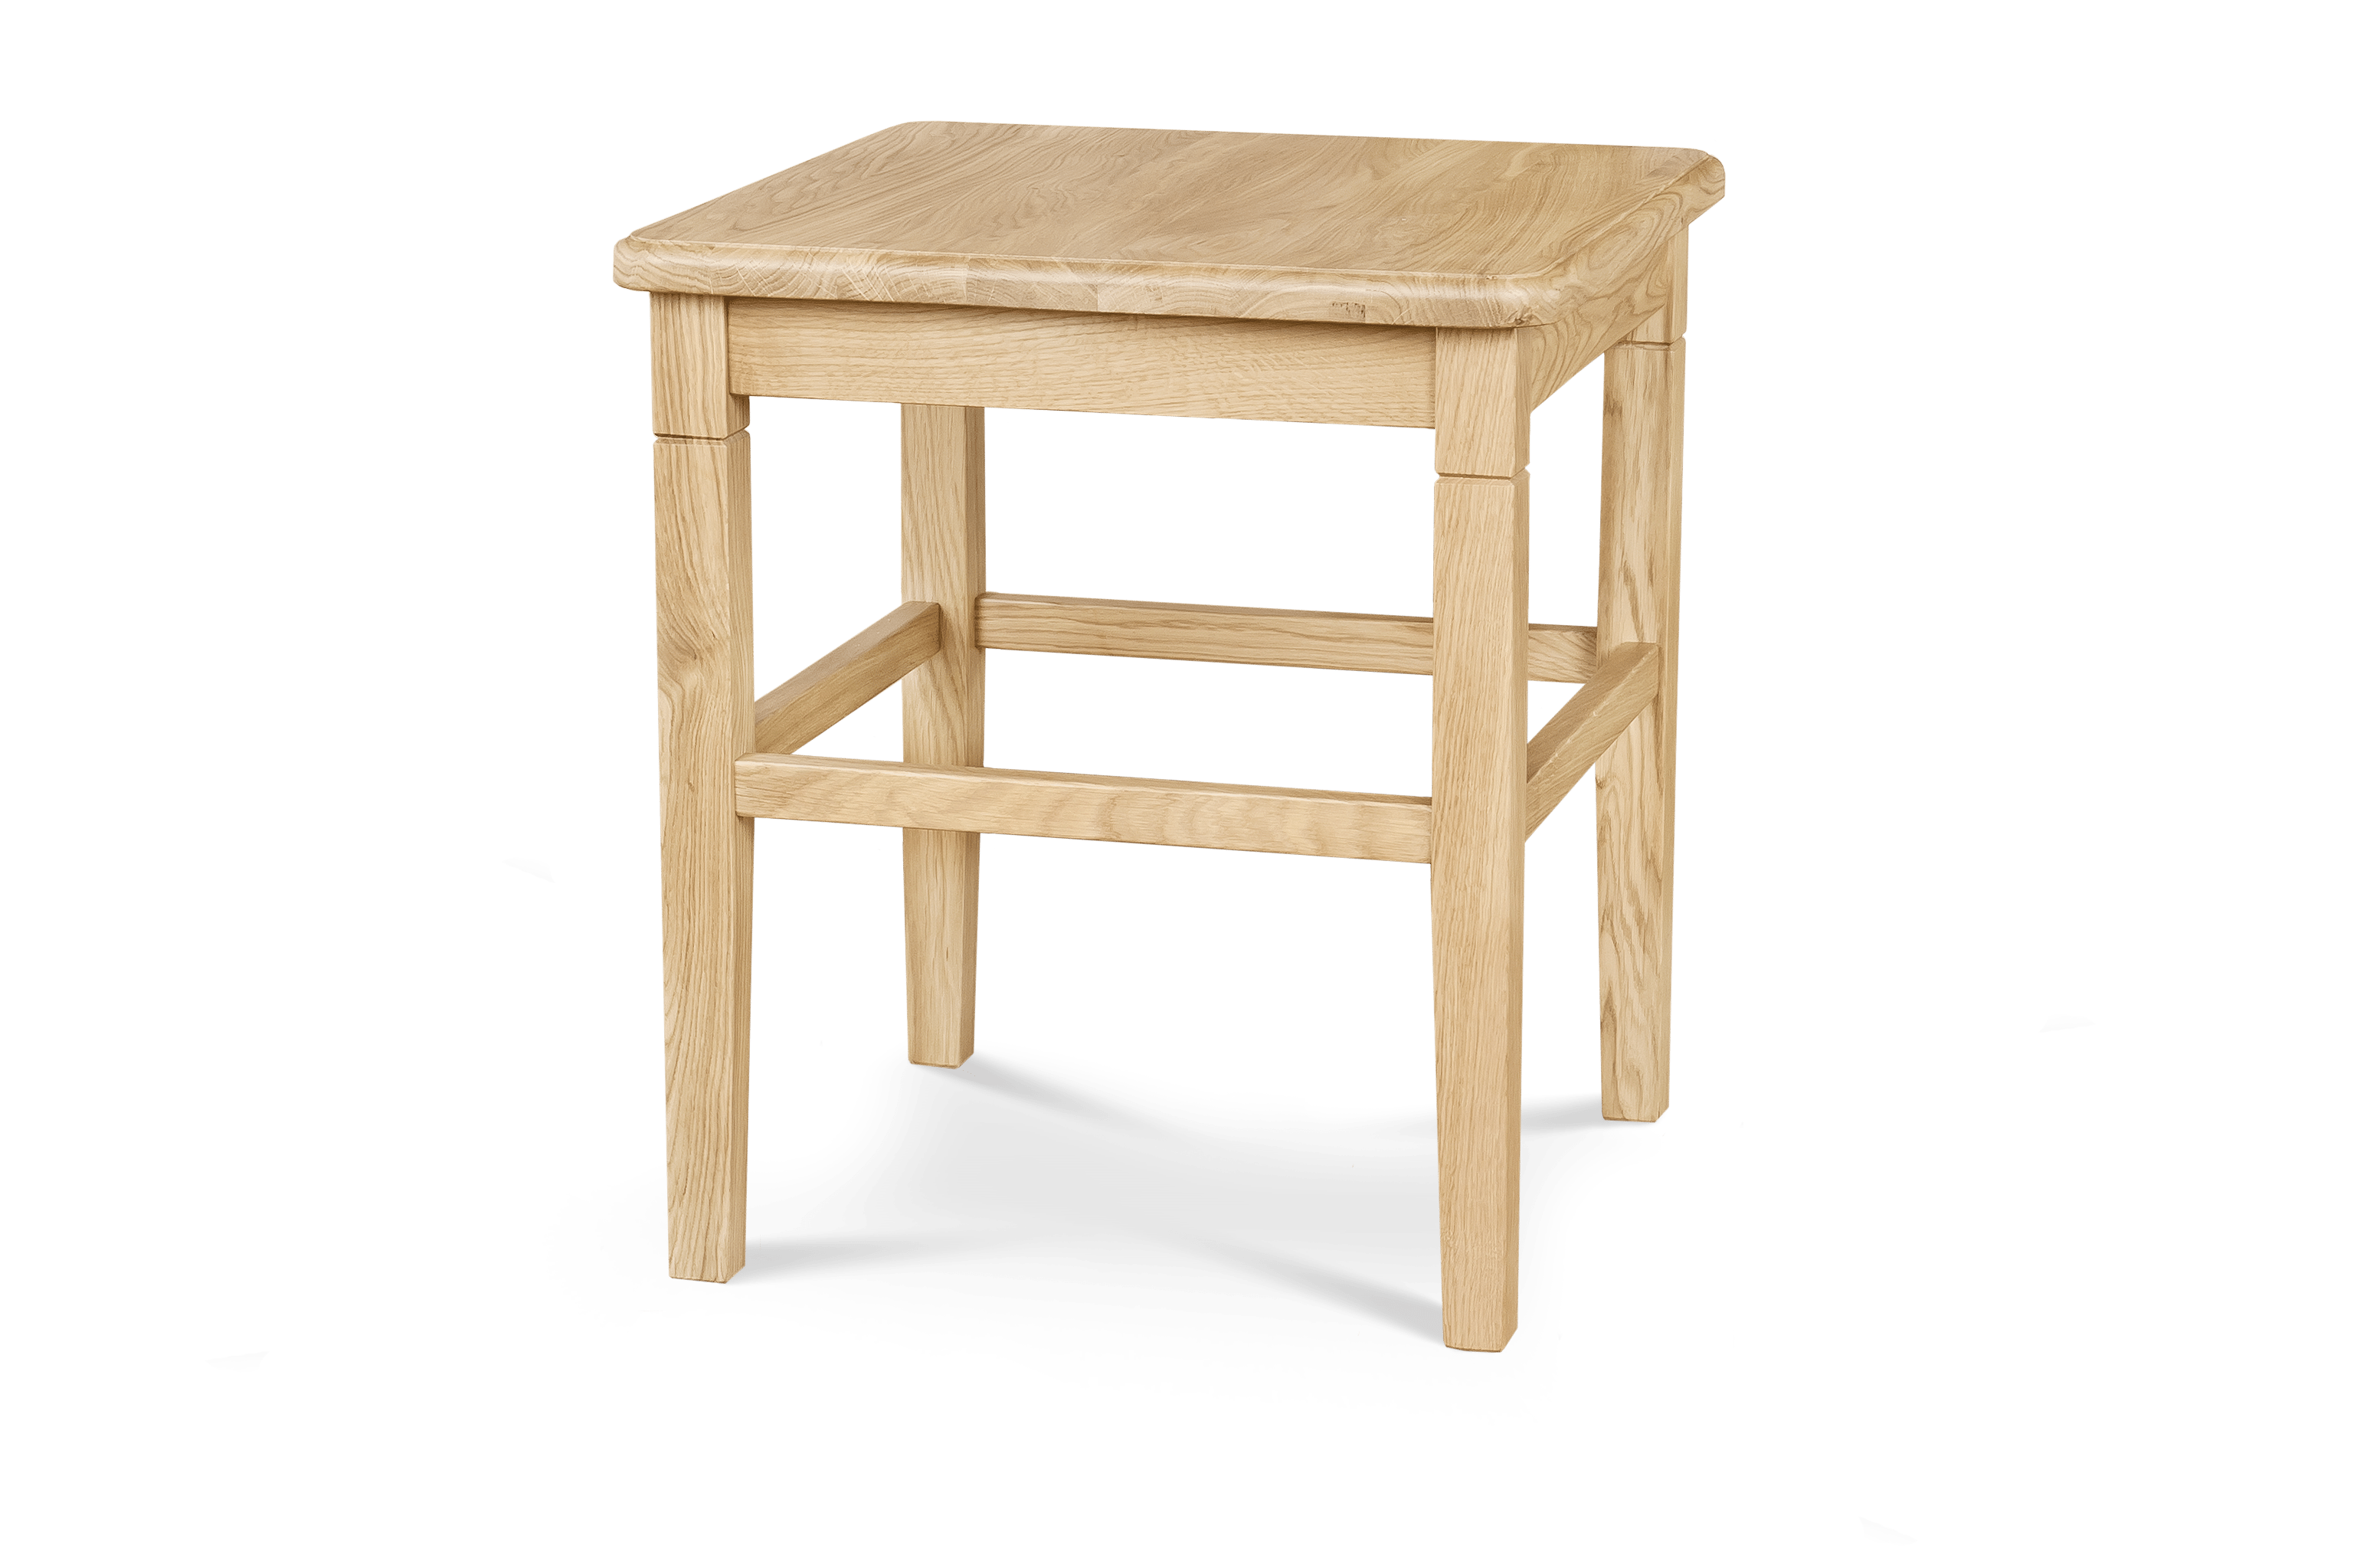 Lamp Table H 560 x W 500 x D 500